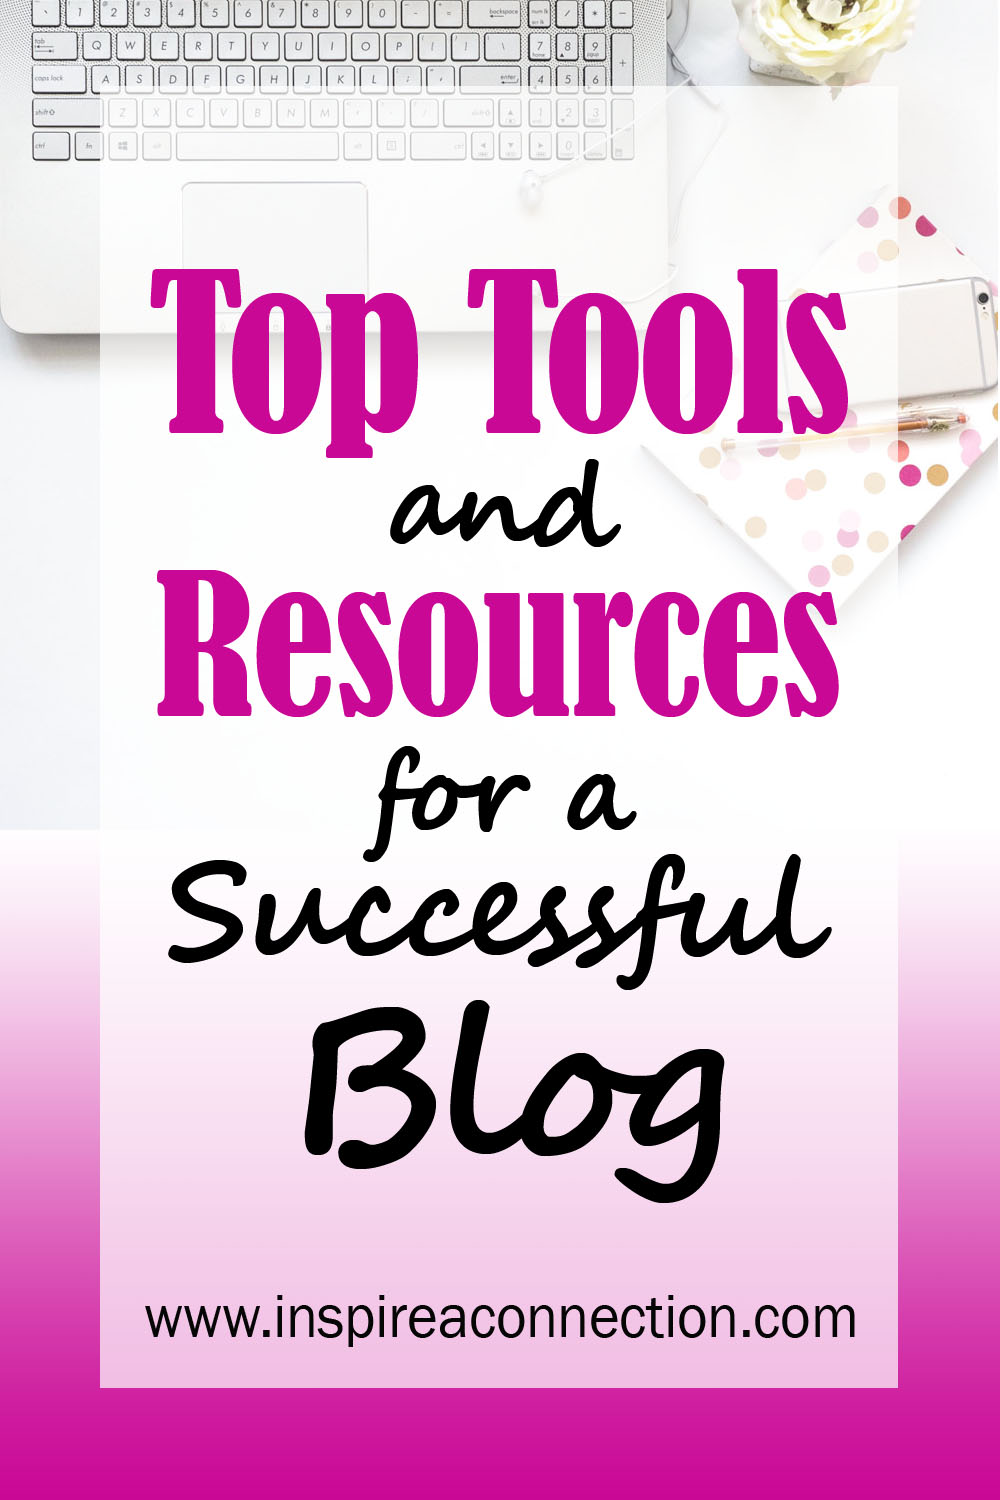 Here is a list of blogging tools and resources to help you keep learning so you can grow your blog and be successful.